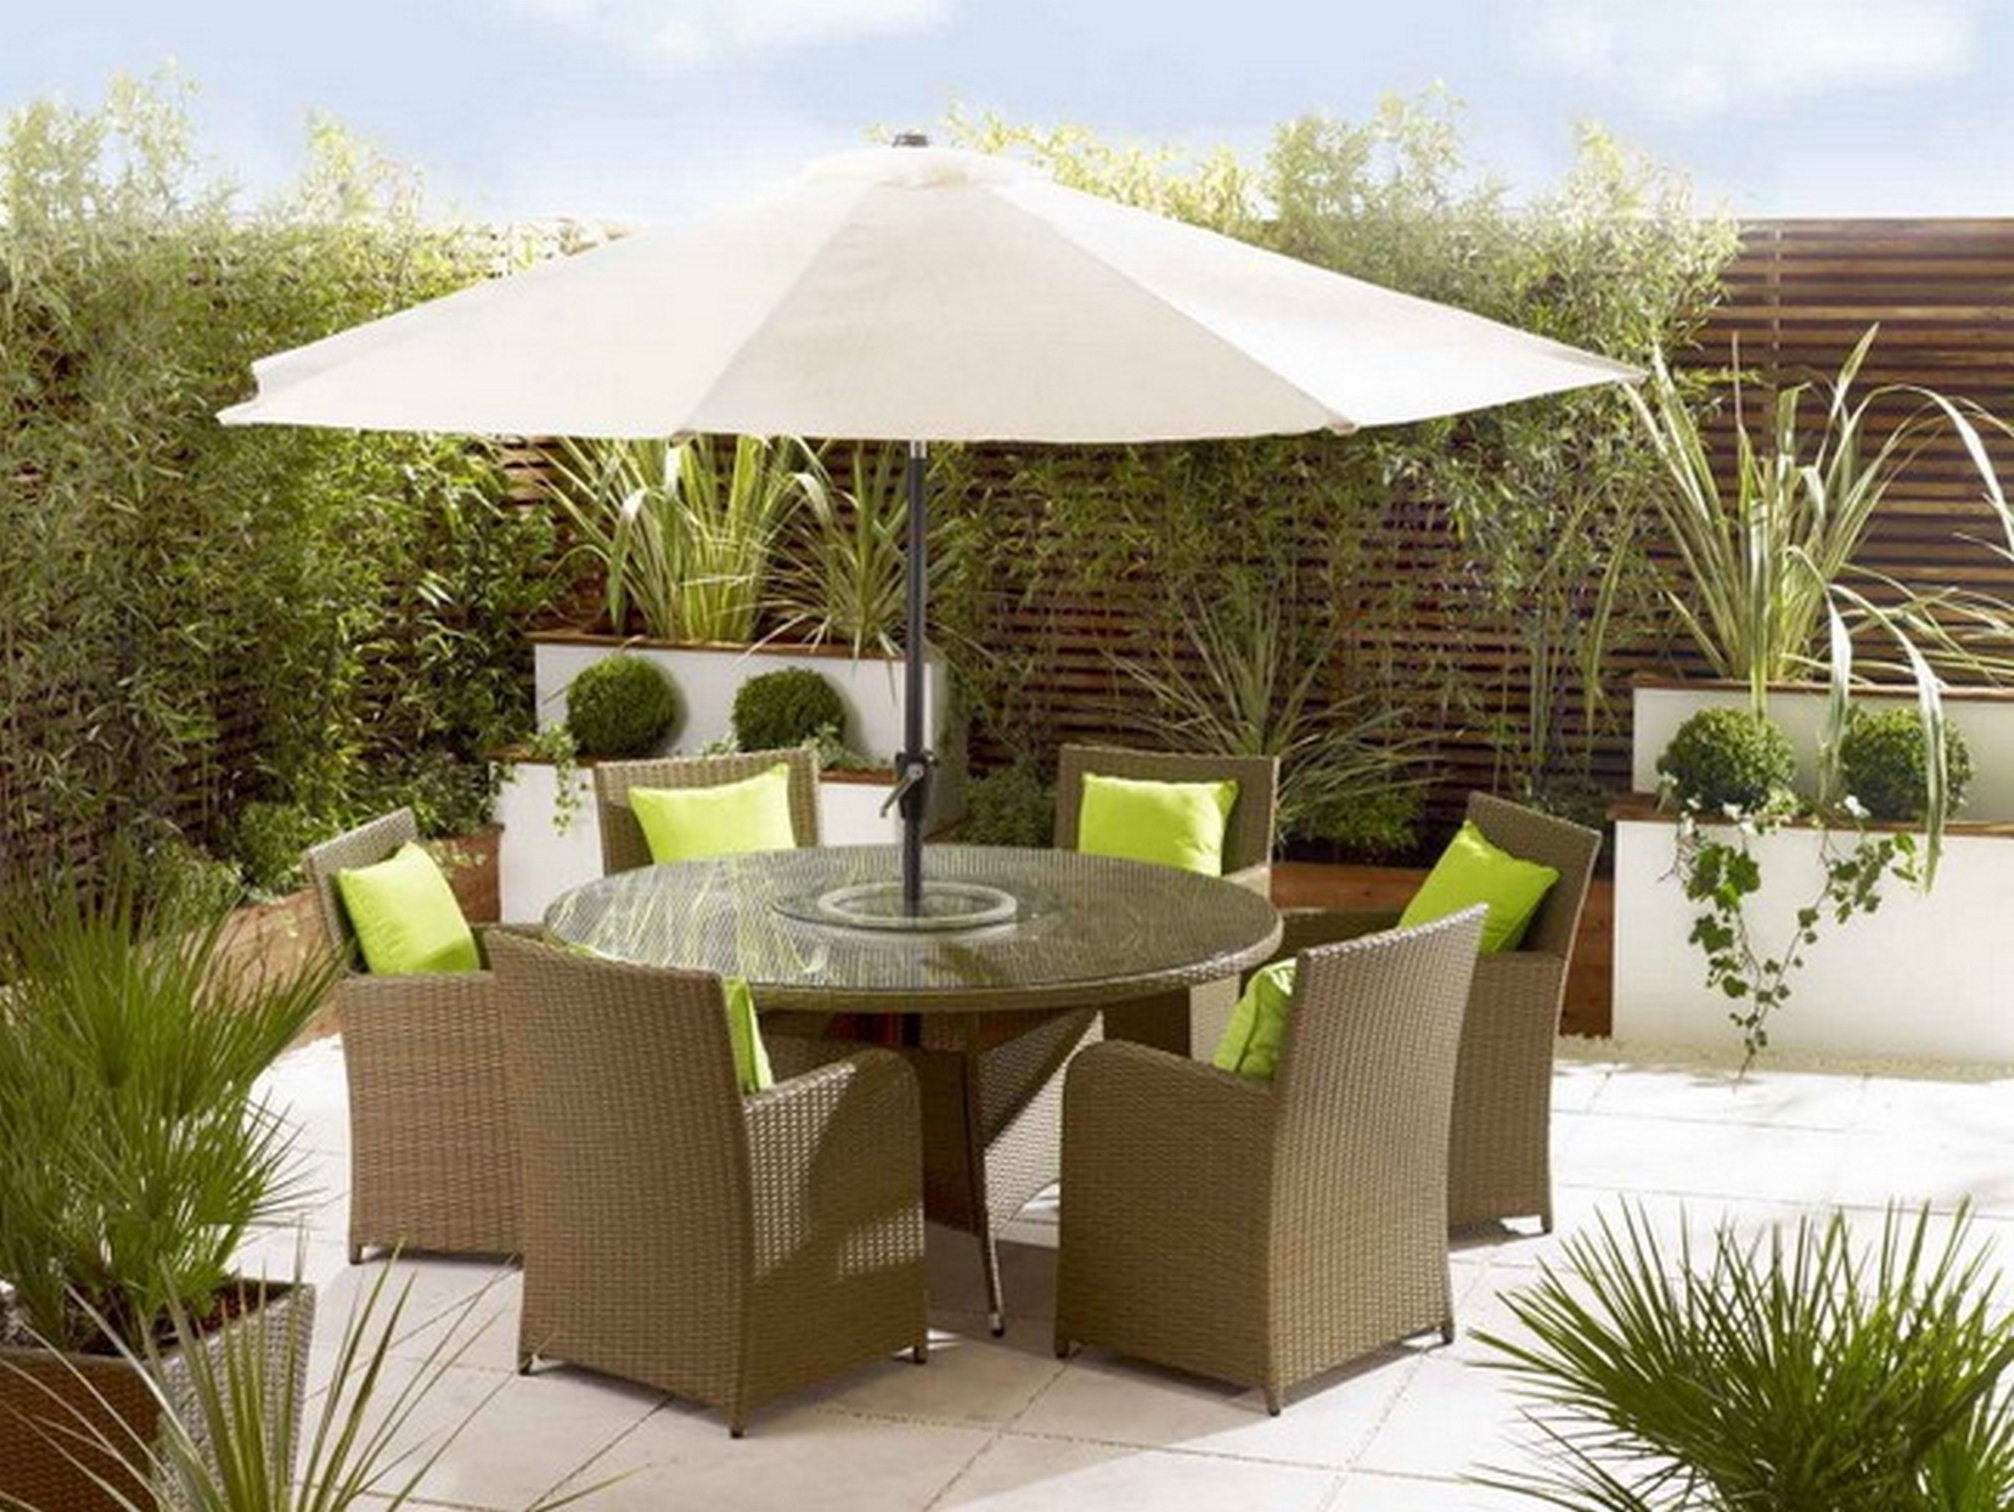 2018 Patio Dining Umbrellas Pertaining To Patio Table Umbrella Cover — Mistikcamping Home Design : The Patio (View 1 of 20)